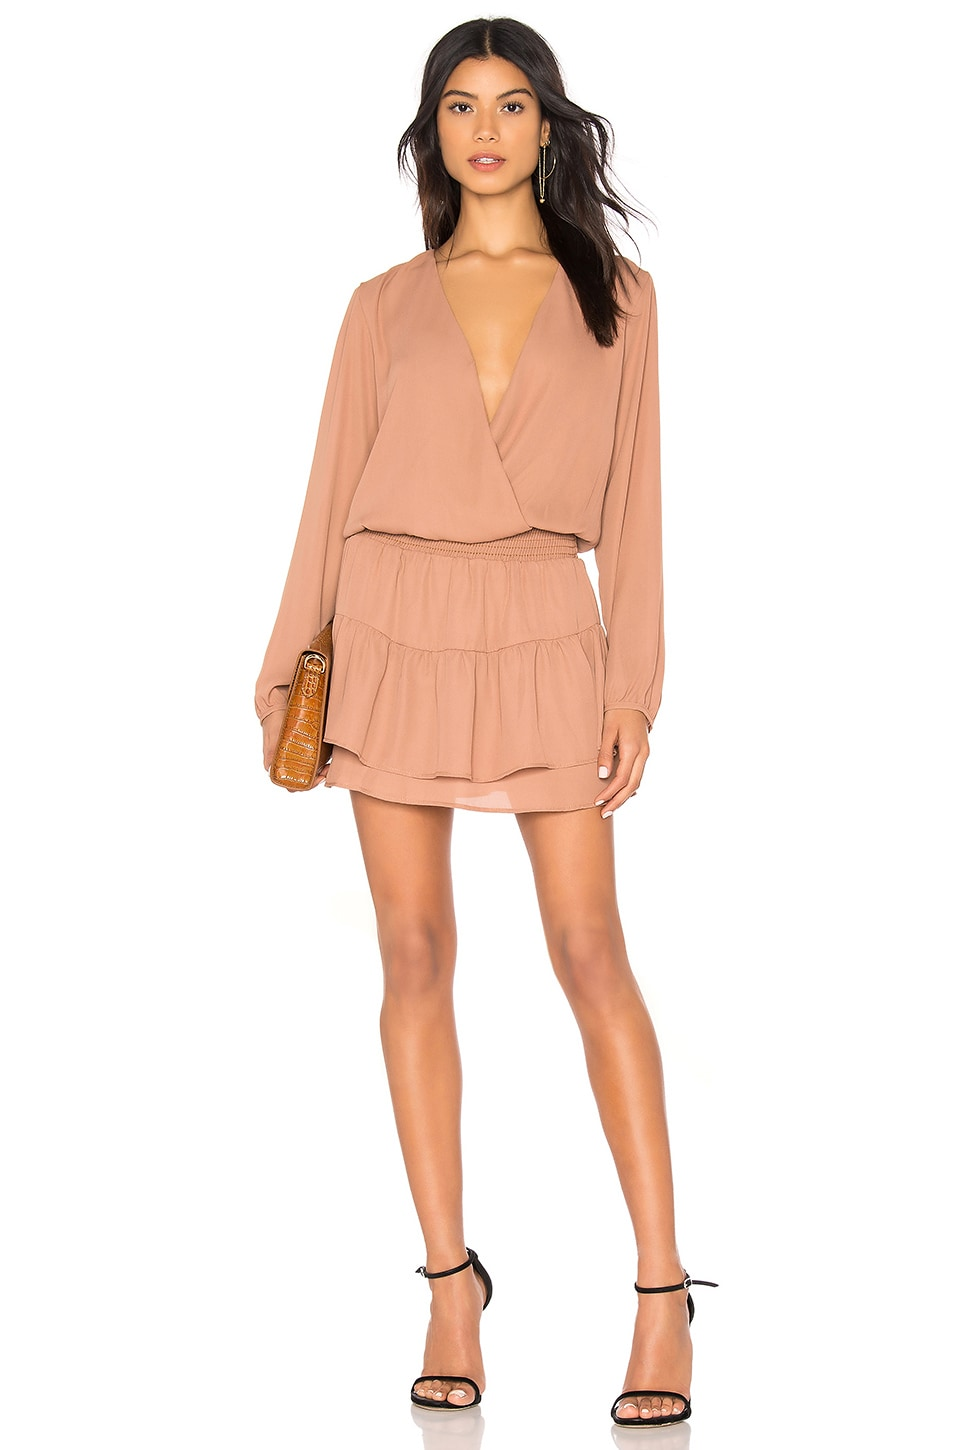 KRISA Smocked Surplice Mini Dress in Tan